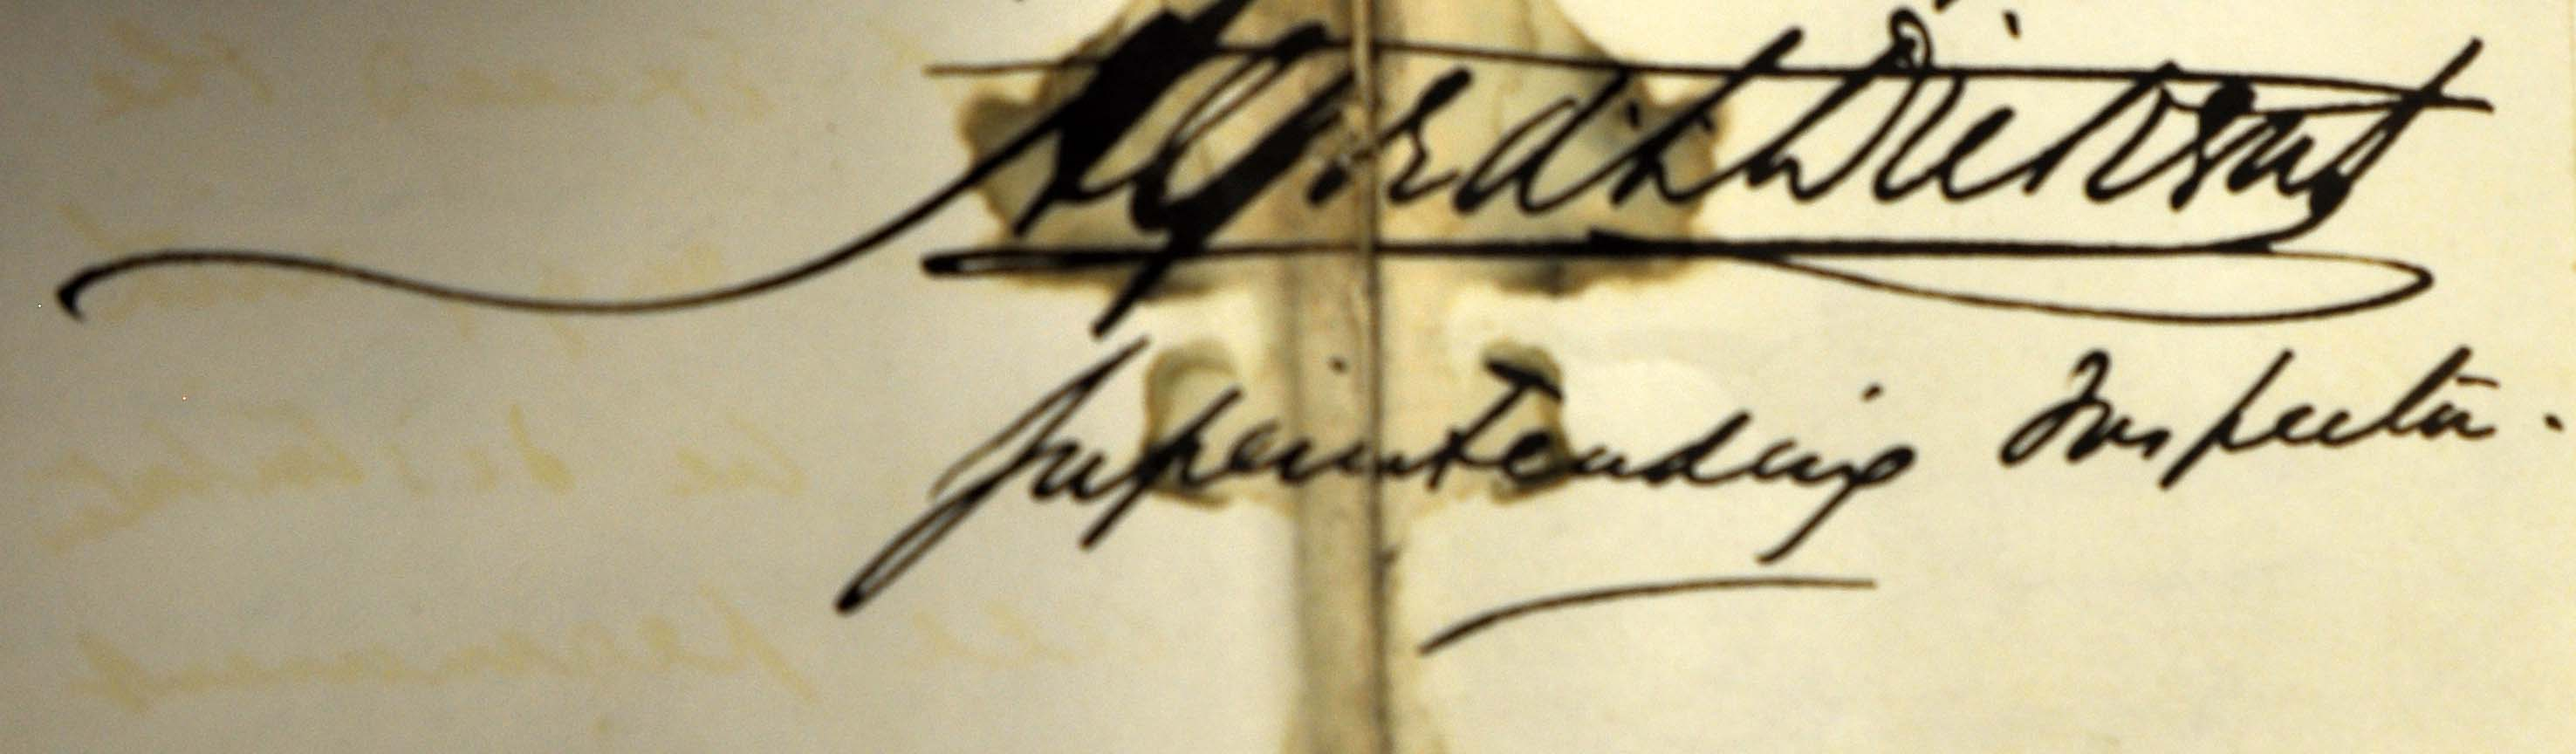 Signature of Alfred Dickens, superintending inspector and brother of Charles Dickens. Catalogue reference: MH 13/78/13